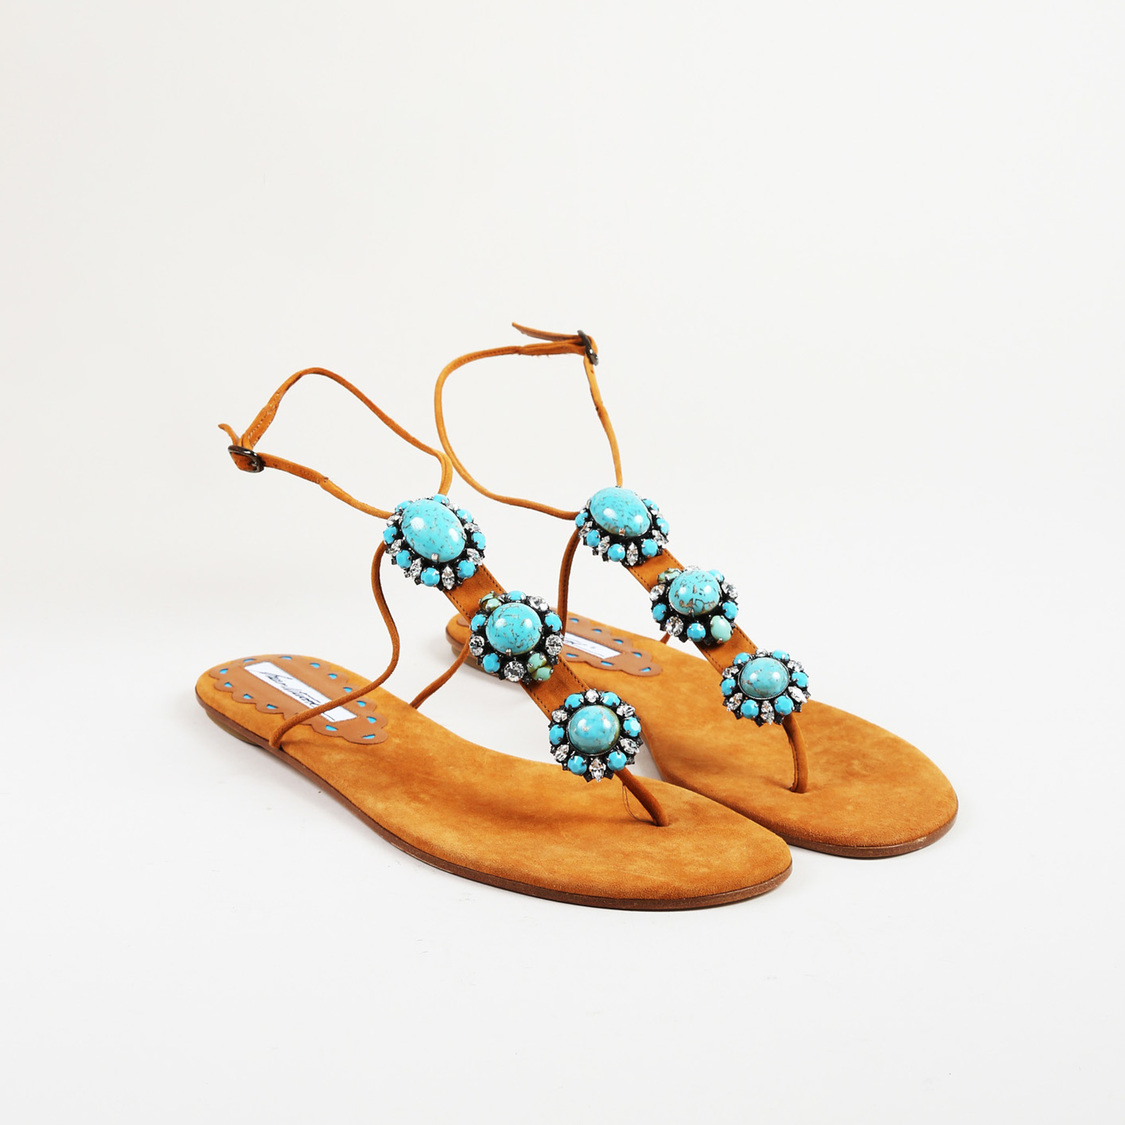 NEW BRIAN ATWOOD EMBELLISHED SANDALS PERFECT SUMMER UK 4.5 EU 37.5 NO RESERVE